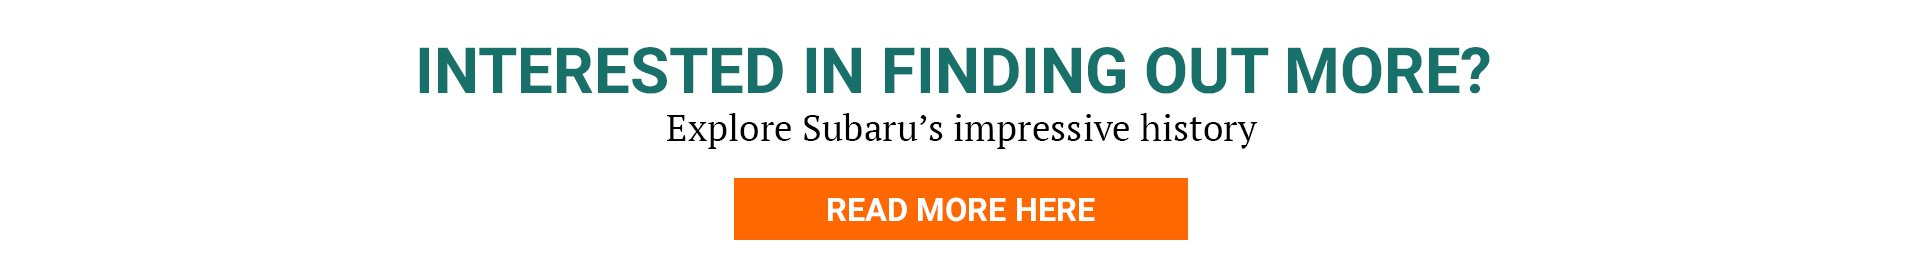 Find out more about the History of Subaru